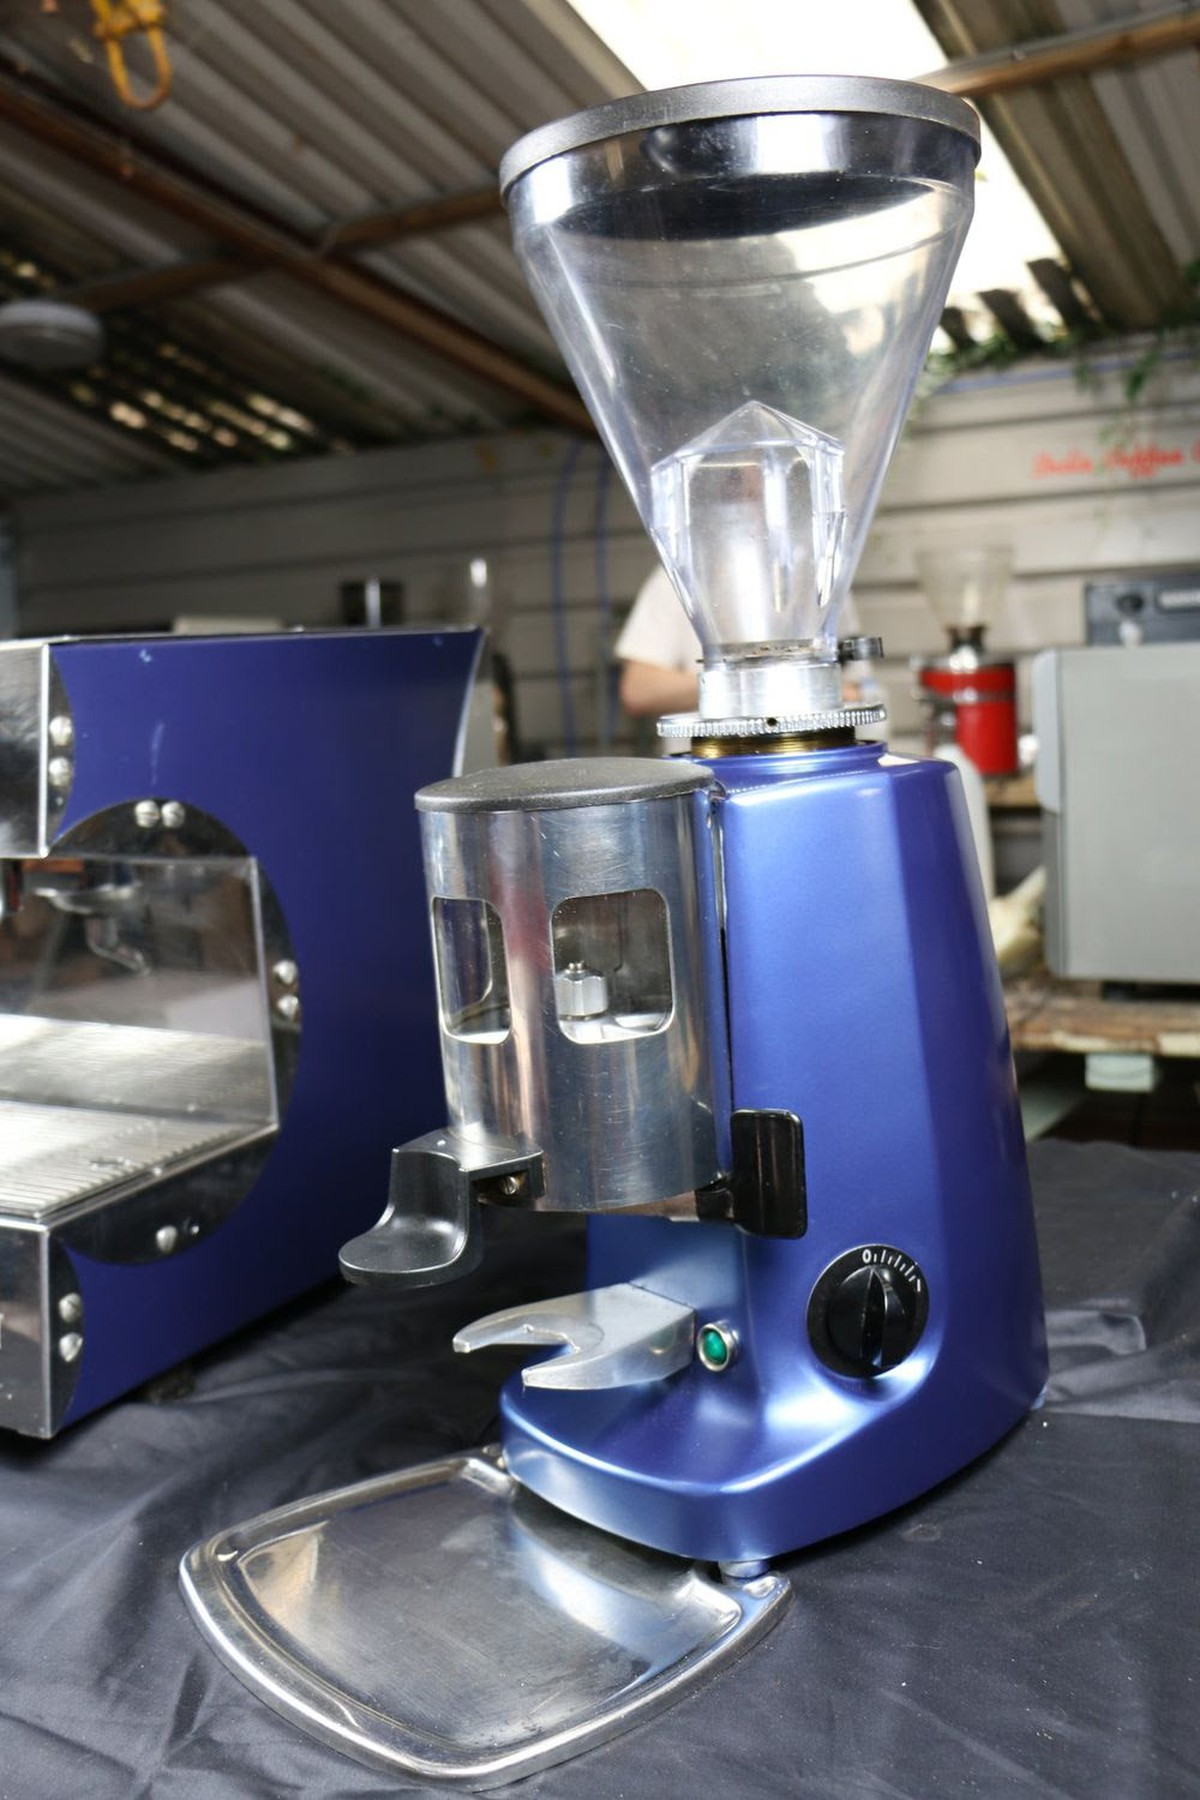 Reconditioned Mazzer Super Jolly Commercial Coffee Grinder Swadlincote Derbyshire